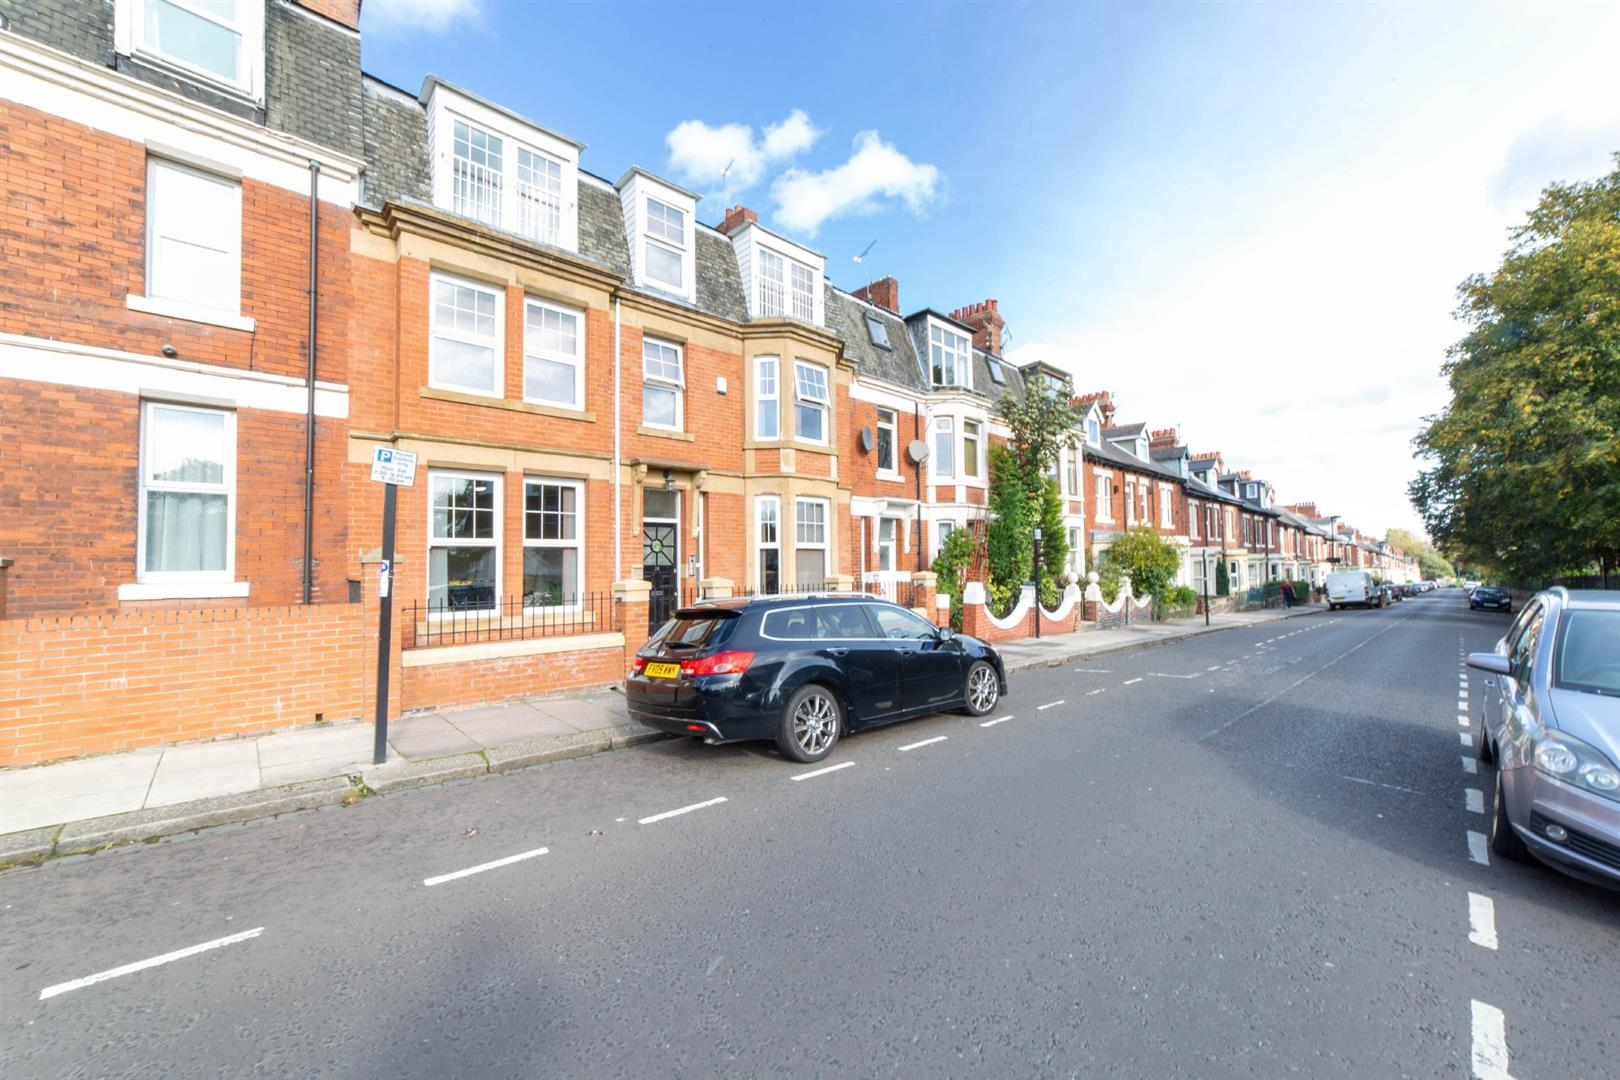 8 bed terraced house to rent in Newcastle Upon Tyne, NE2 1JS  - Property Image 5